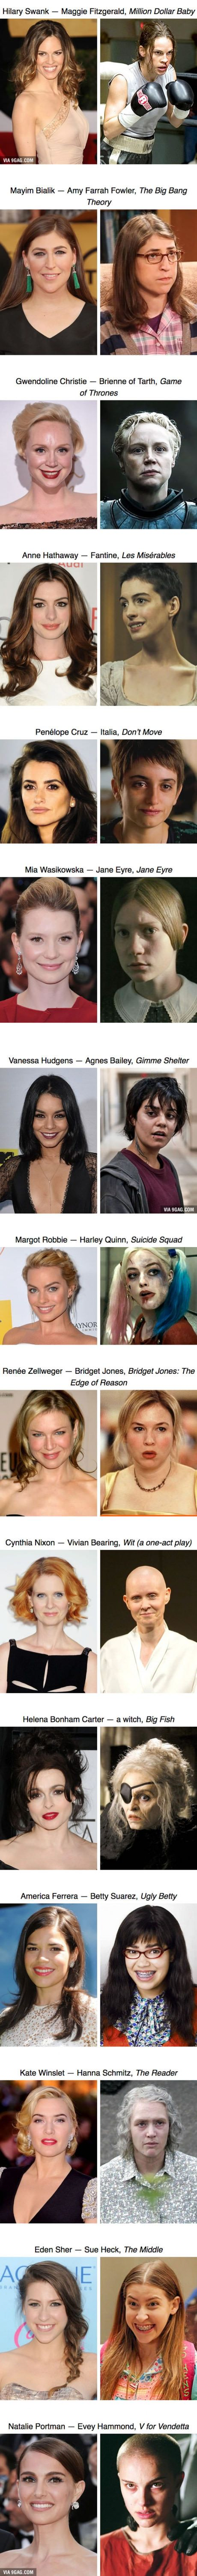 15 actresses who sacrificed their beauty for movie roles